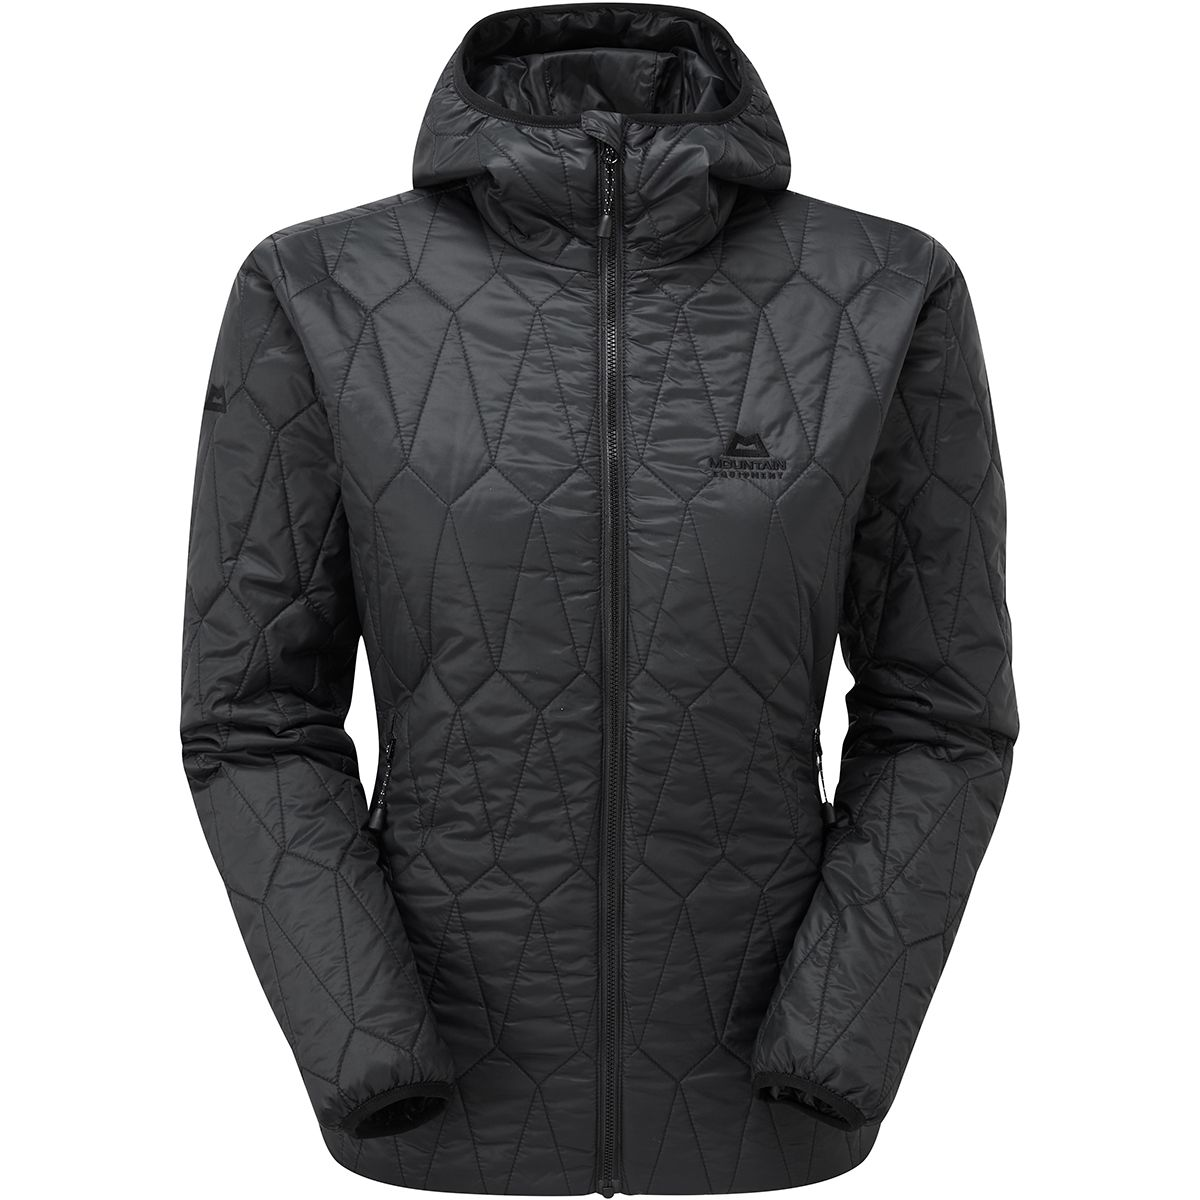 Mountain Equipment Damen Rampart Hooded Jacke (Größe S, Schwarz) | Isolationsjacken > Damen